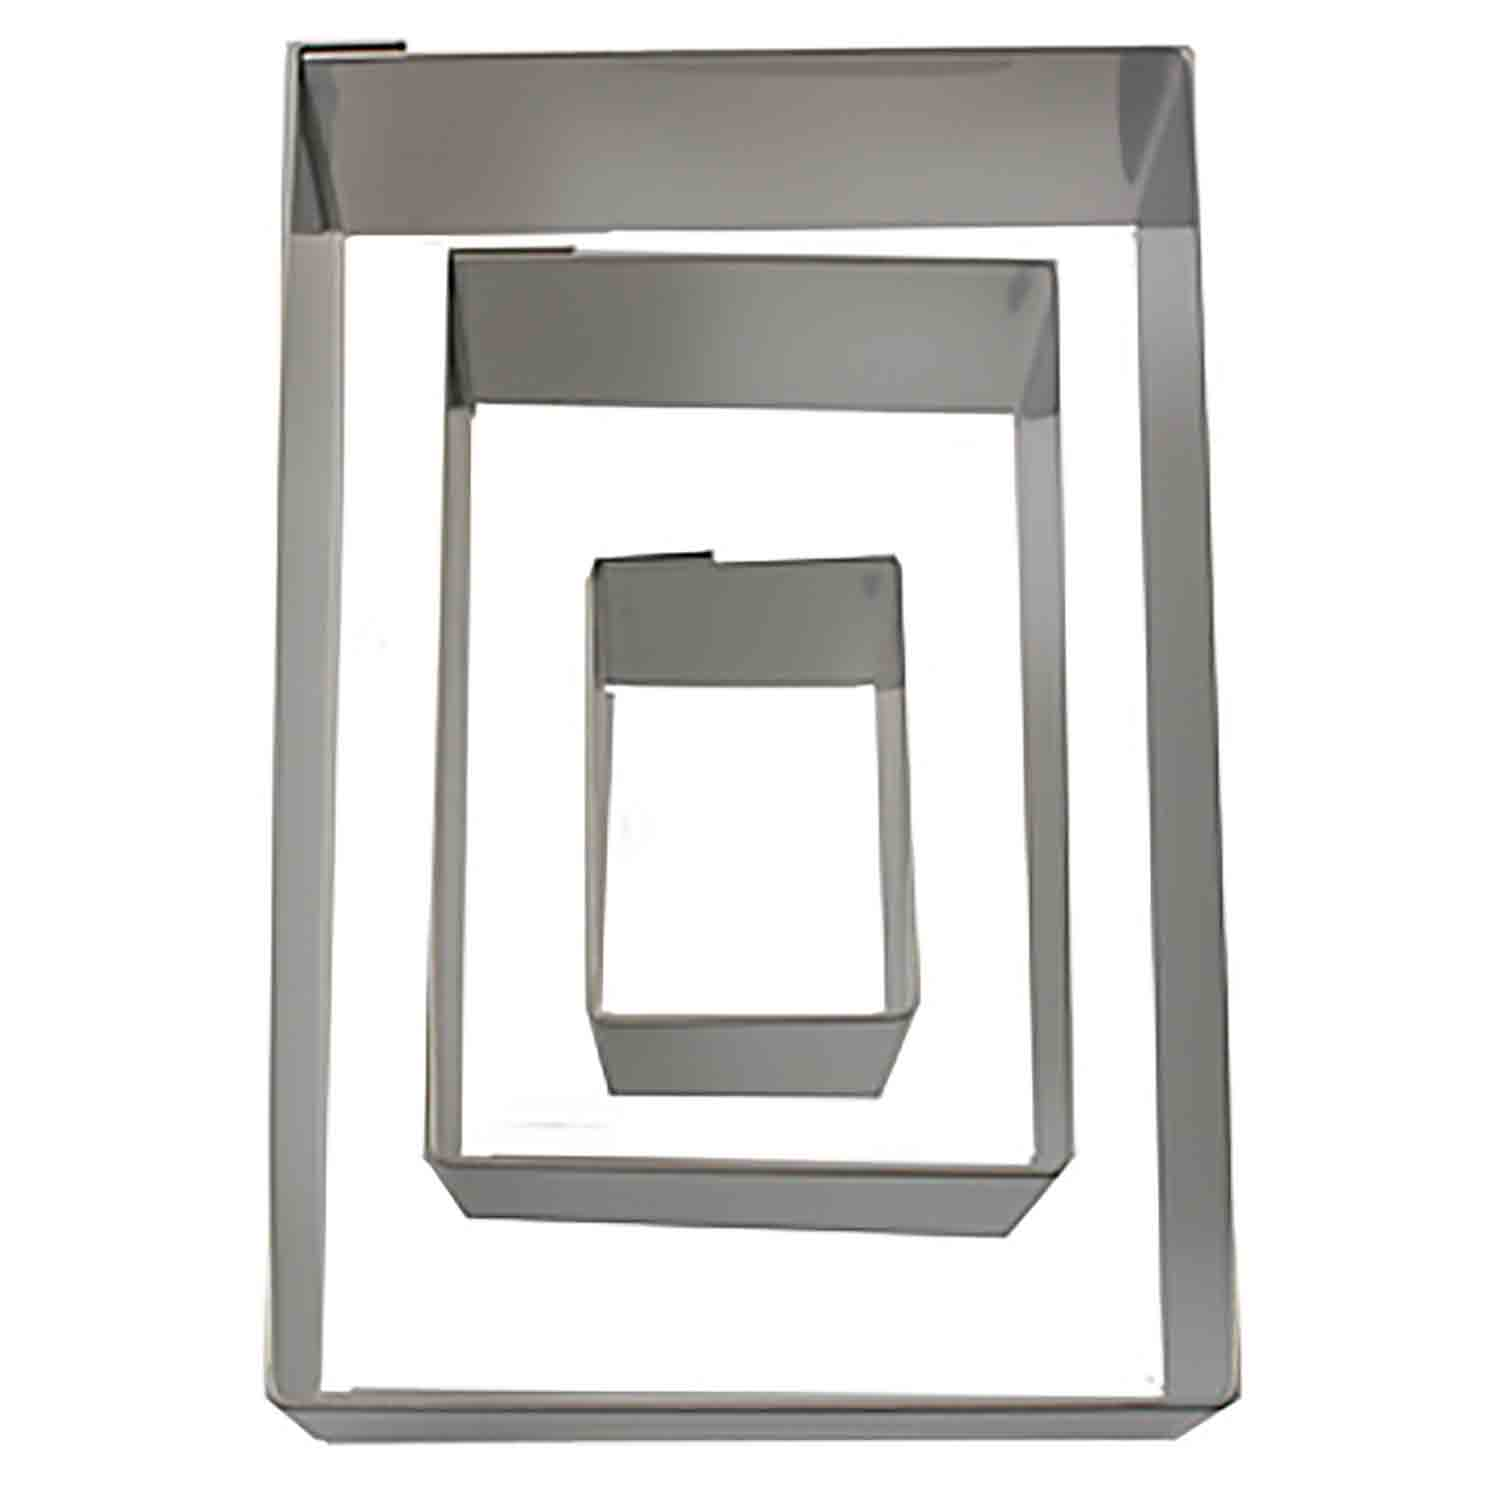 Stainless Steel Rectangle Cookie Cutter Set